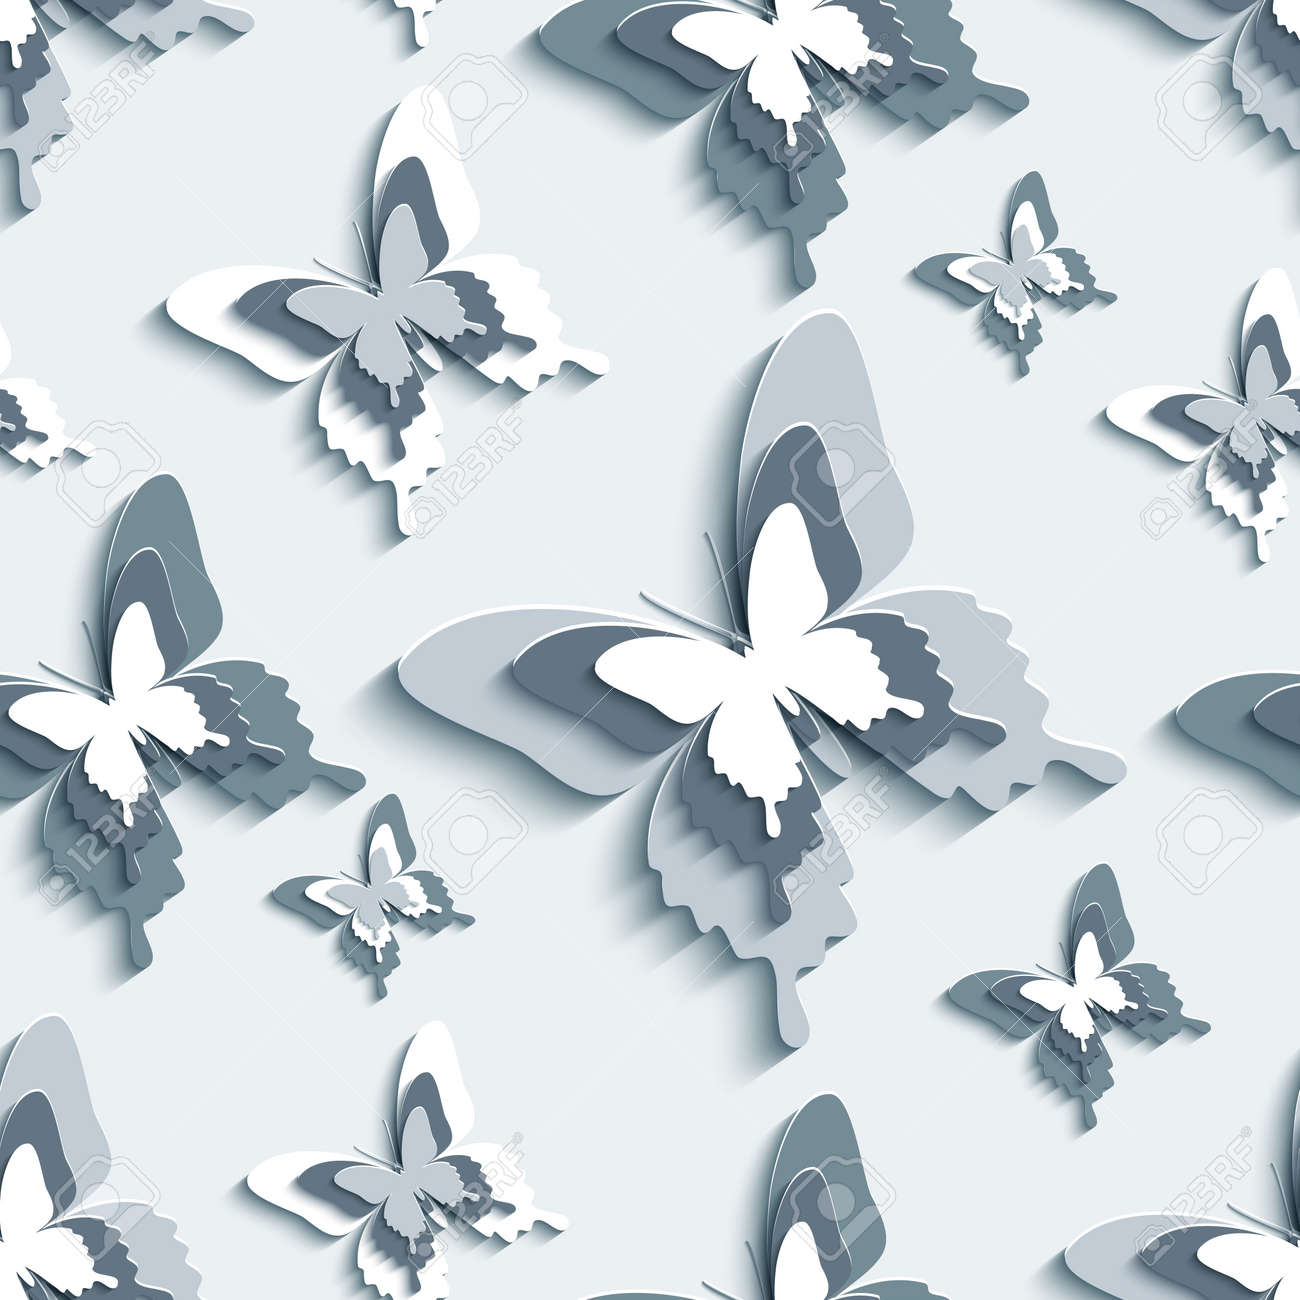 Trendy Creative Wallpaper. Modern Stylish Background Seamless Pattern With  Flying White, Gray, Black 3d Butterflies Cutting Paper